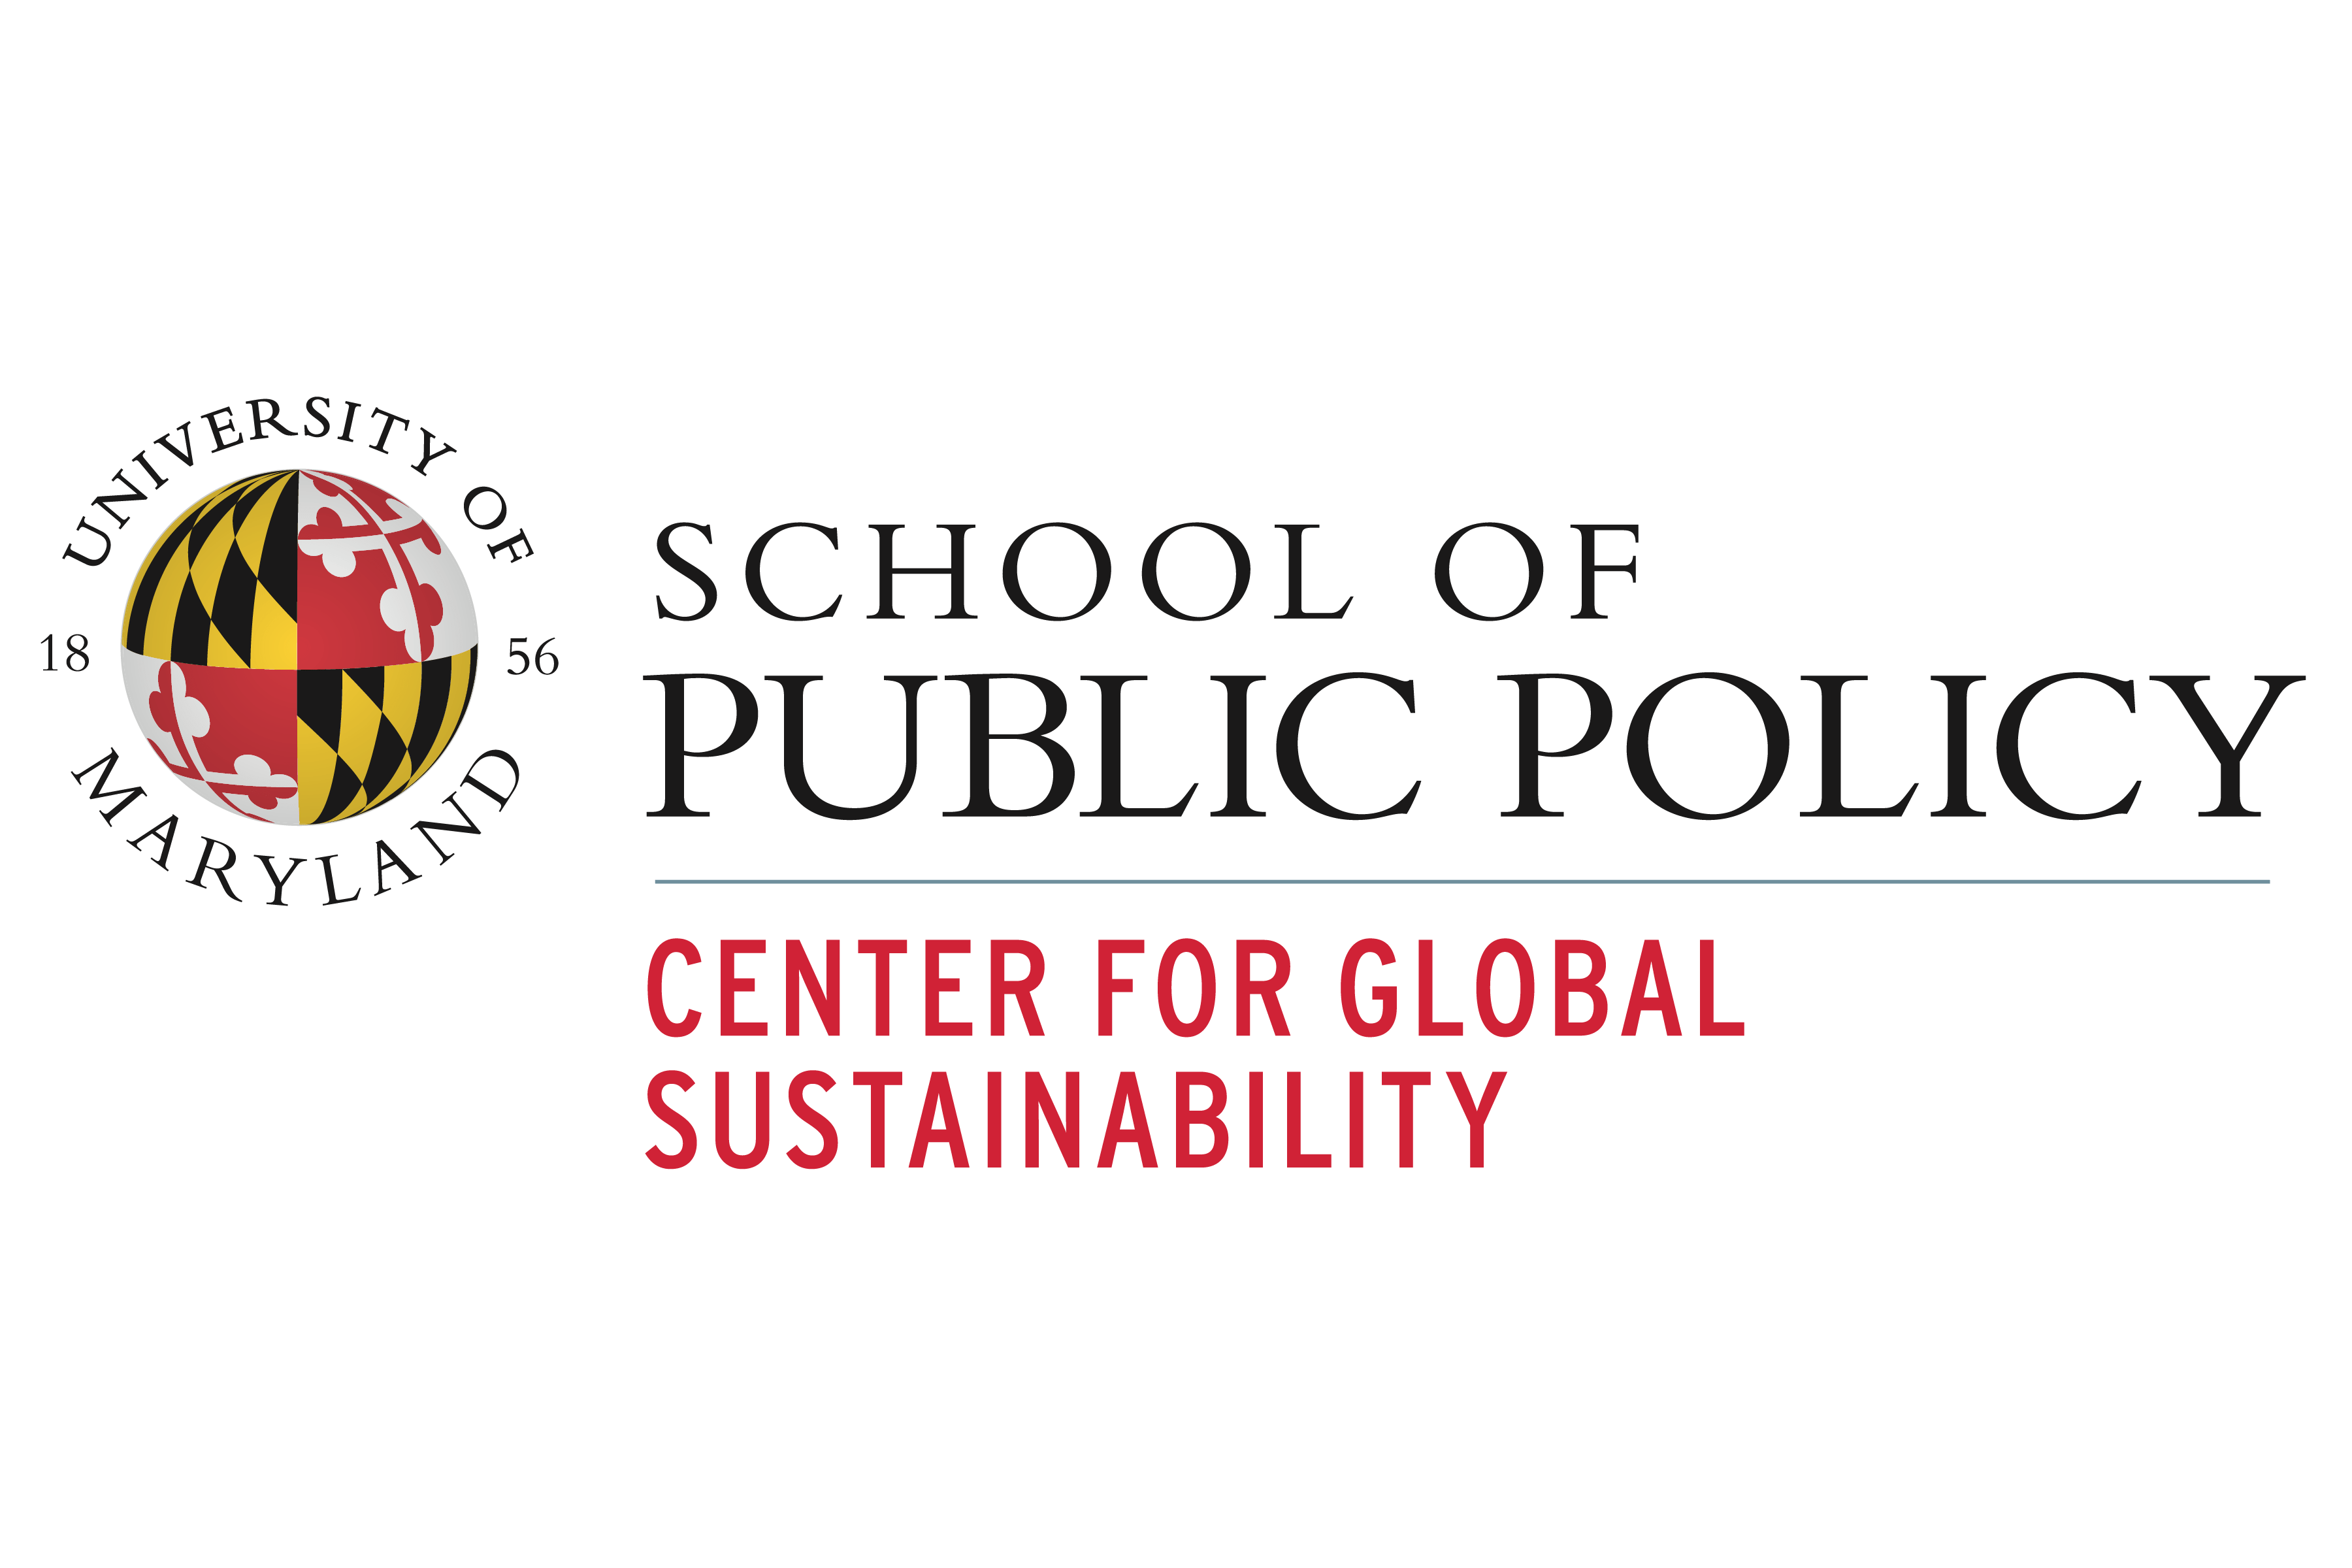 School of Public Policy  Center for Global Sustainability